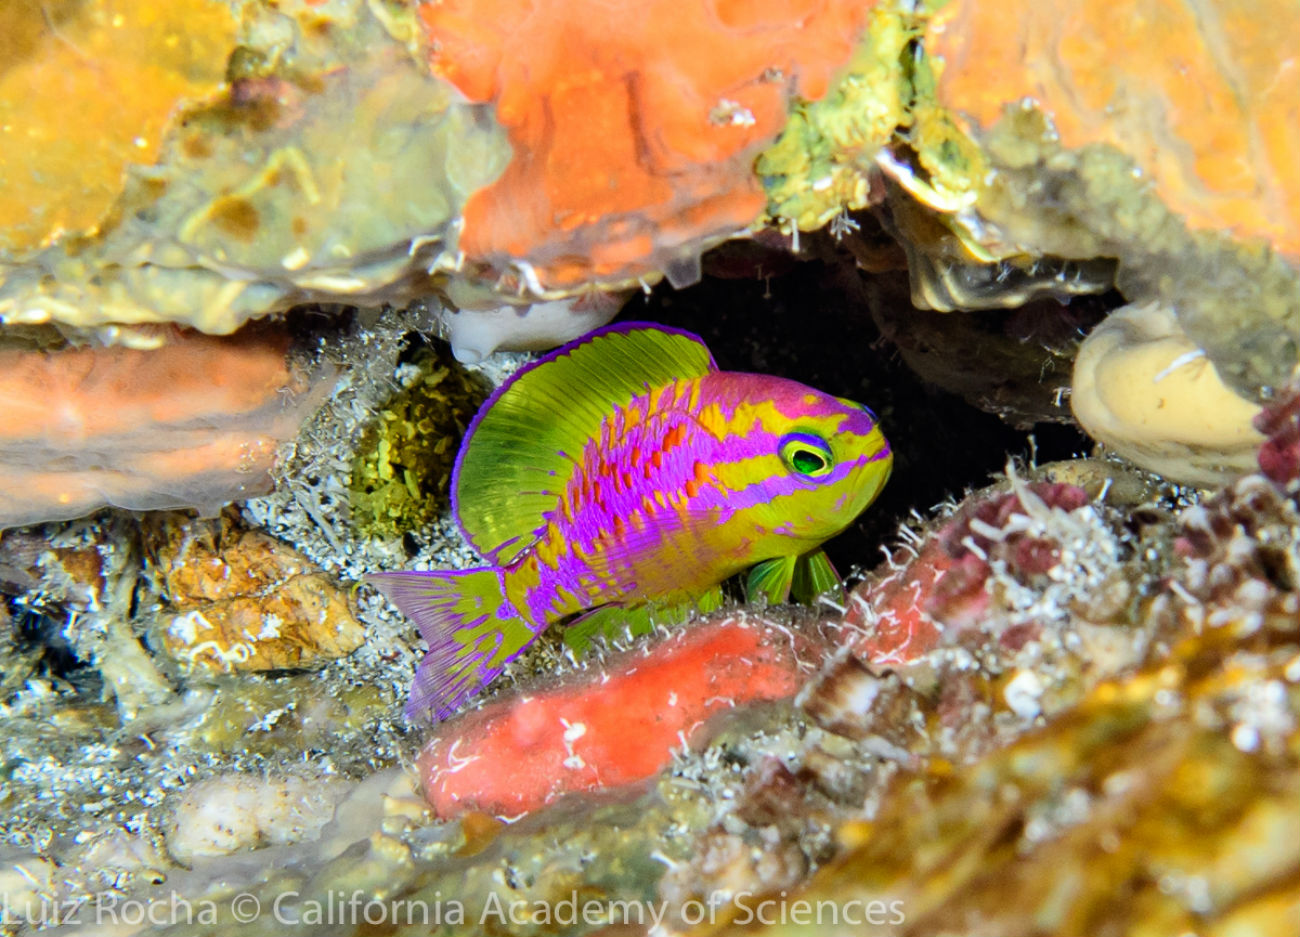 Scientific divers from the California Academy of Sciences discover new species of dazzling, neon-colored fish